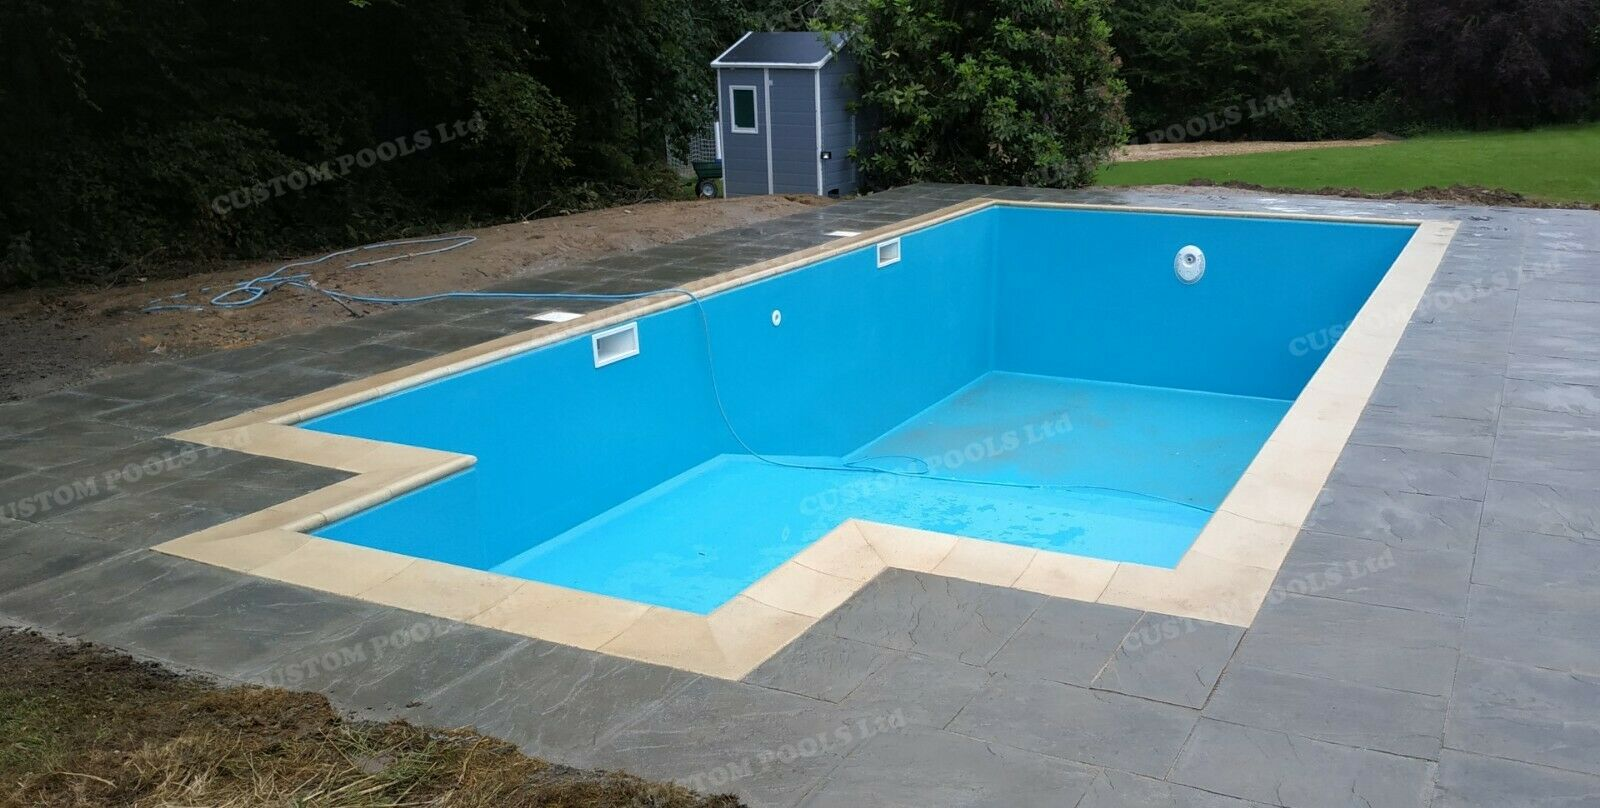 Fibreglass Polyester SWIMMING POOL 10m x 5m x 1,80m insulated in-ground ALL UK